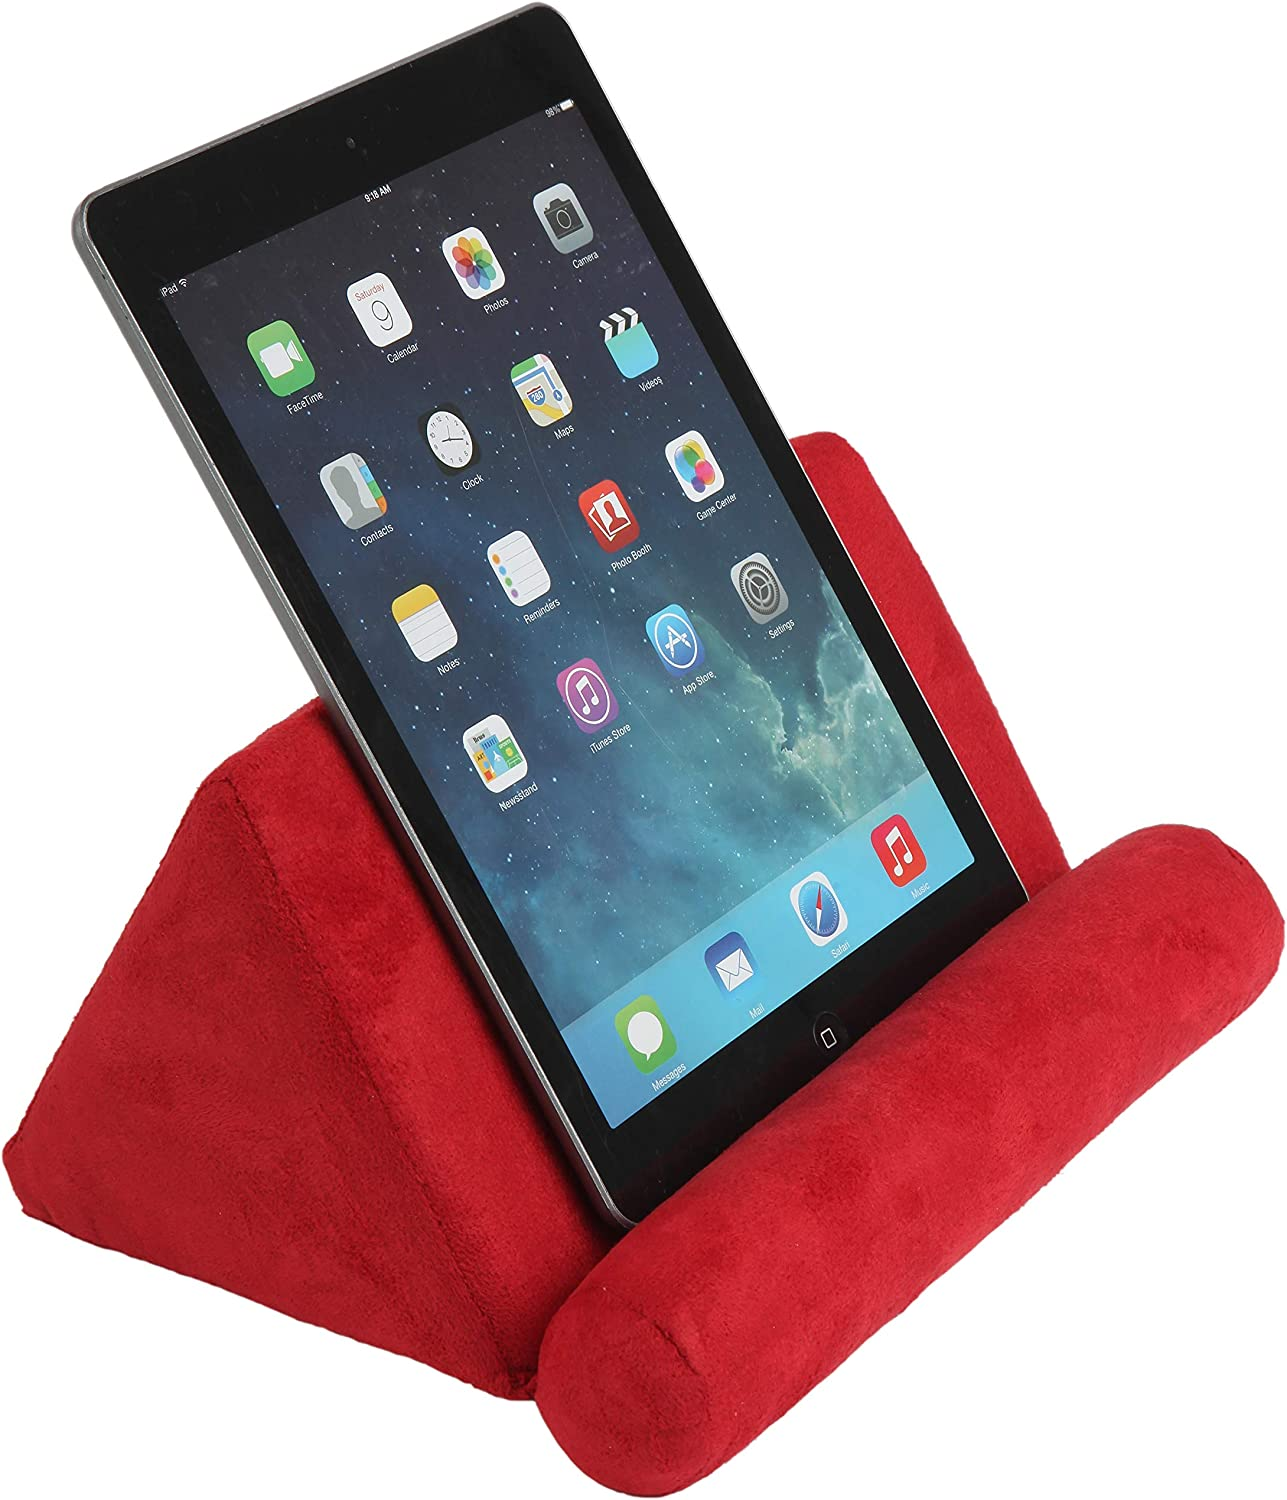 Trenton Gifts Plush Tablet Holder   Hands Free   Great for E-Readers & Smartphones   Red